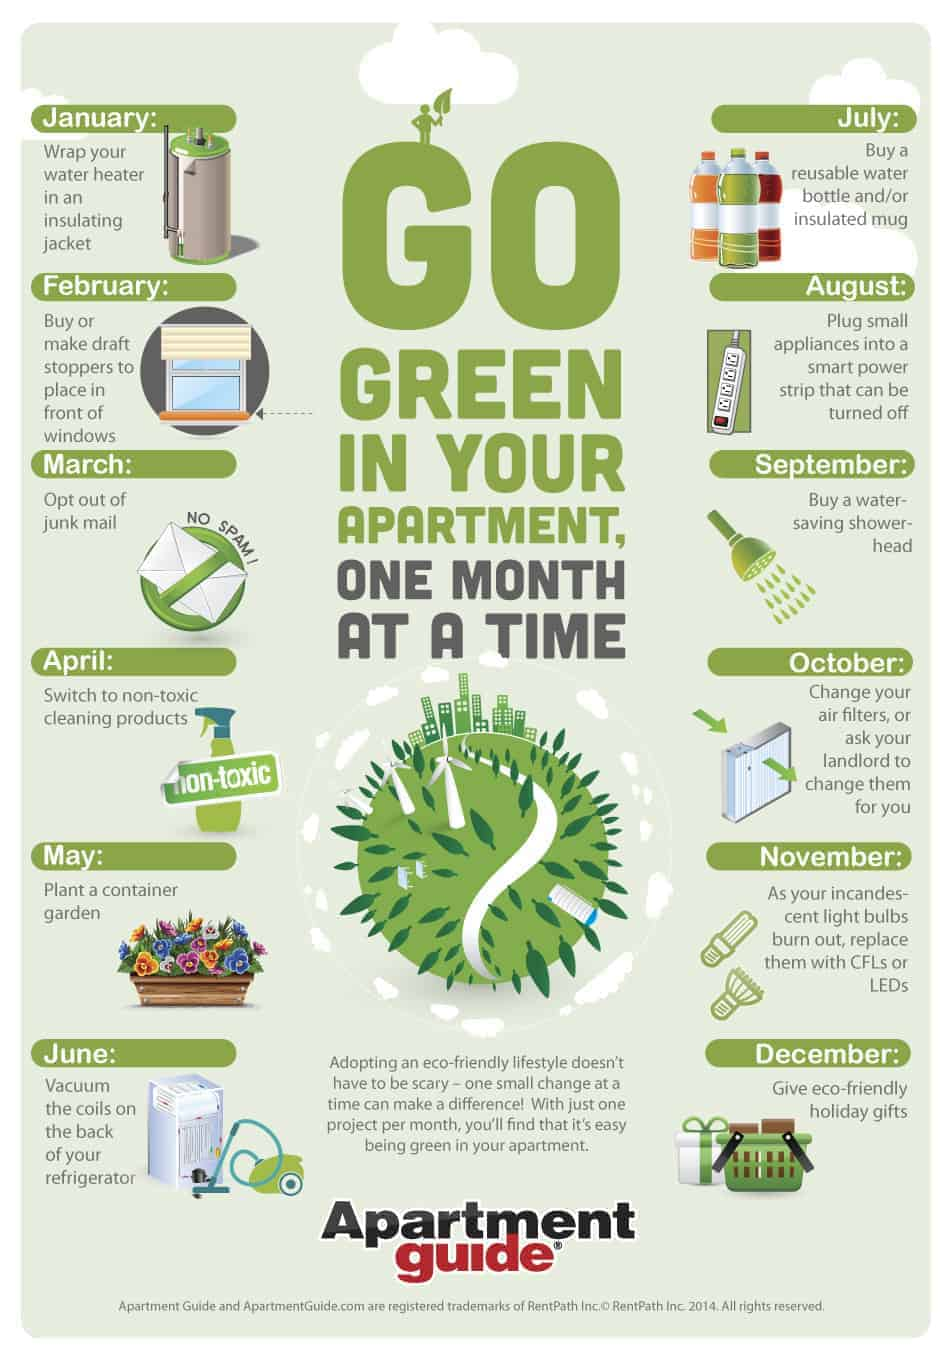 Go Green in your apartment, one month at a time [Infographic] | ecogreenlove